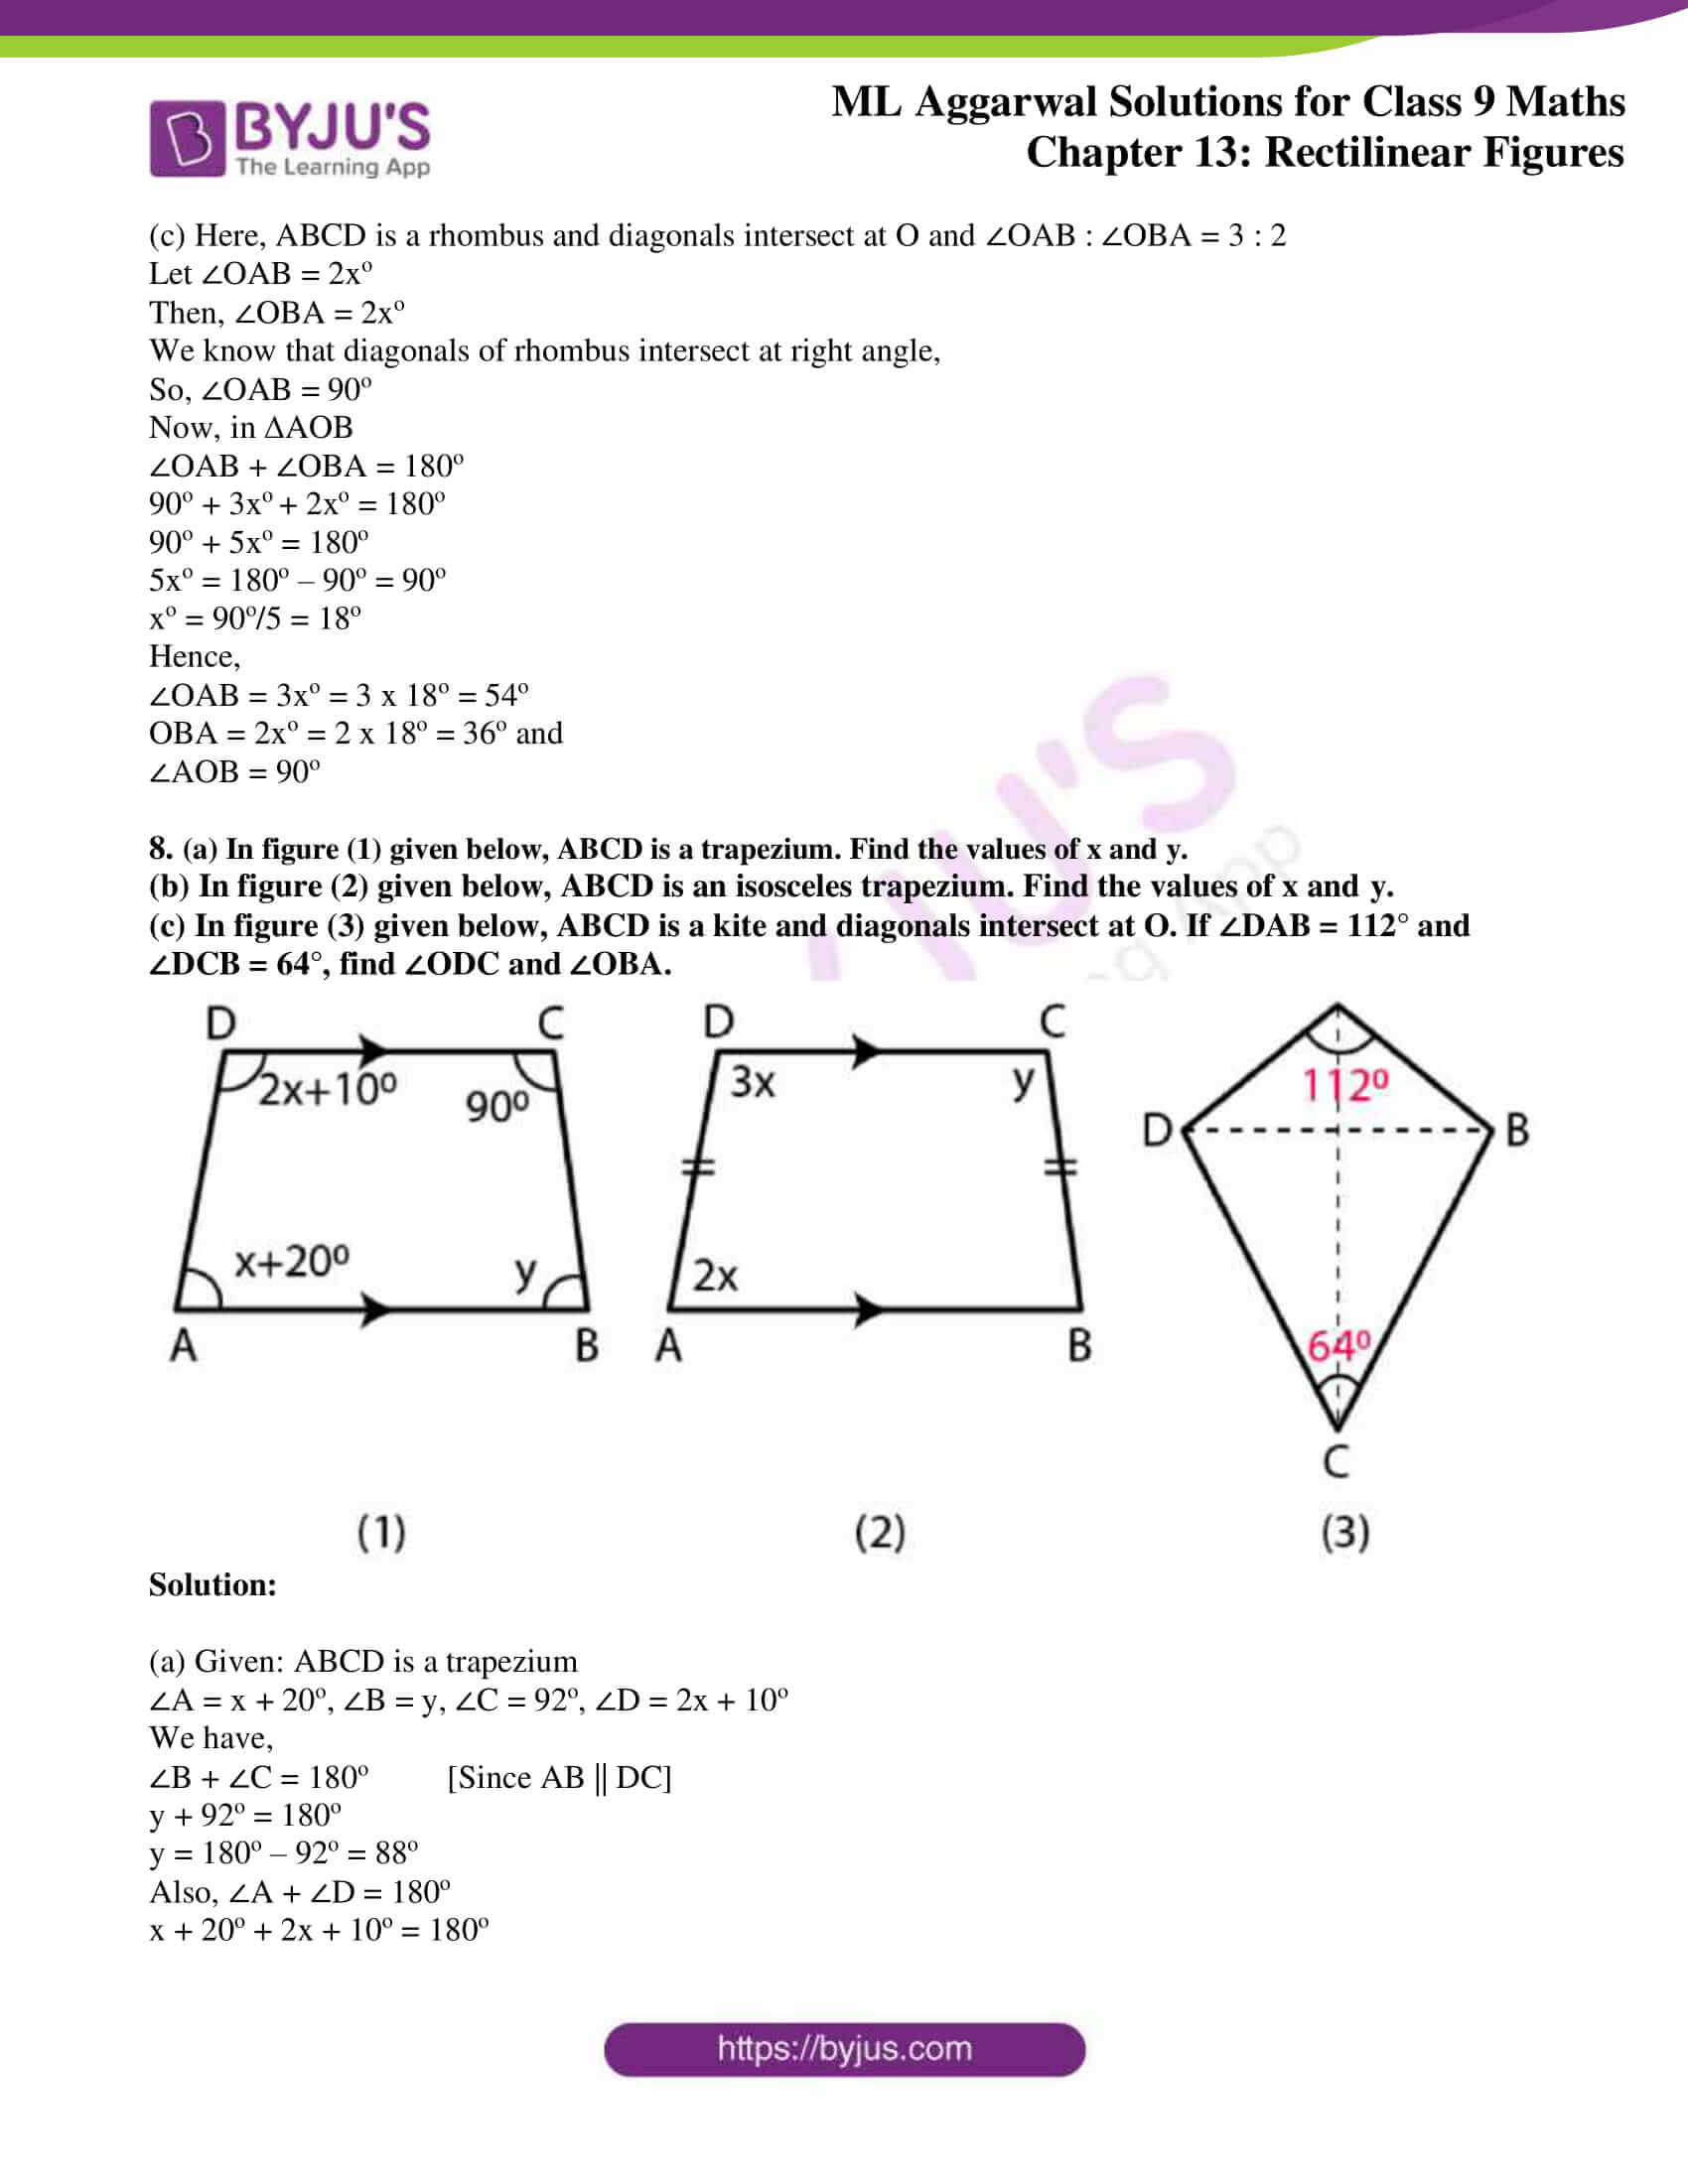 ml aggarwal solutions for class 9 maths chapter 13 07